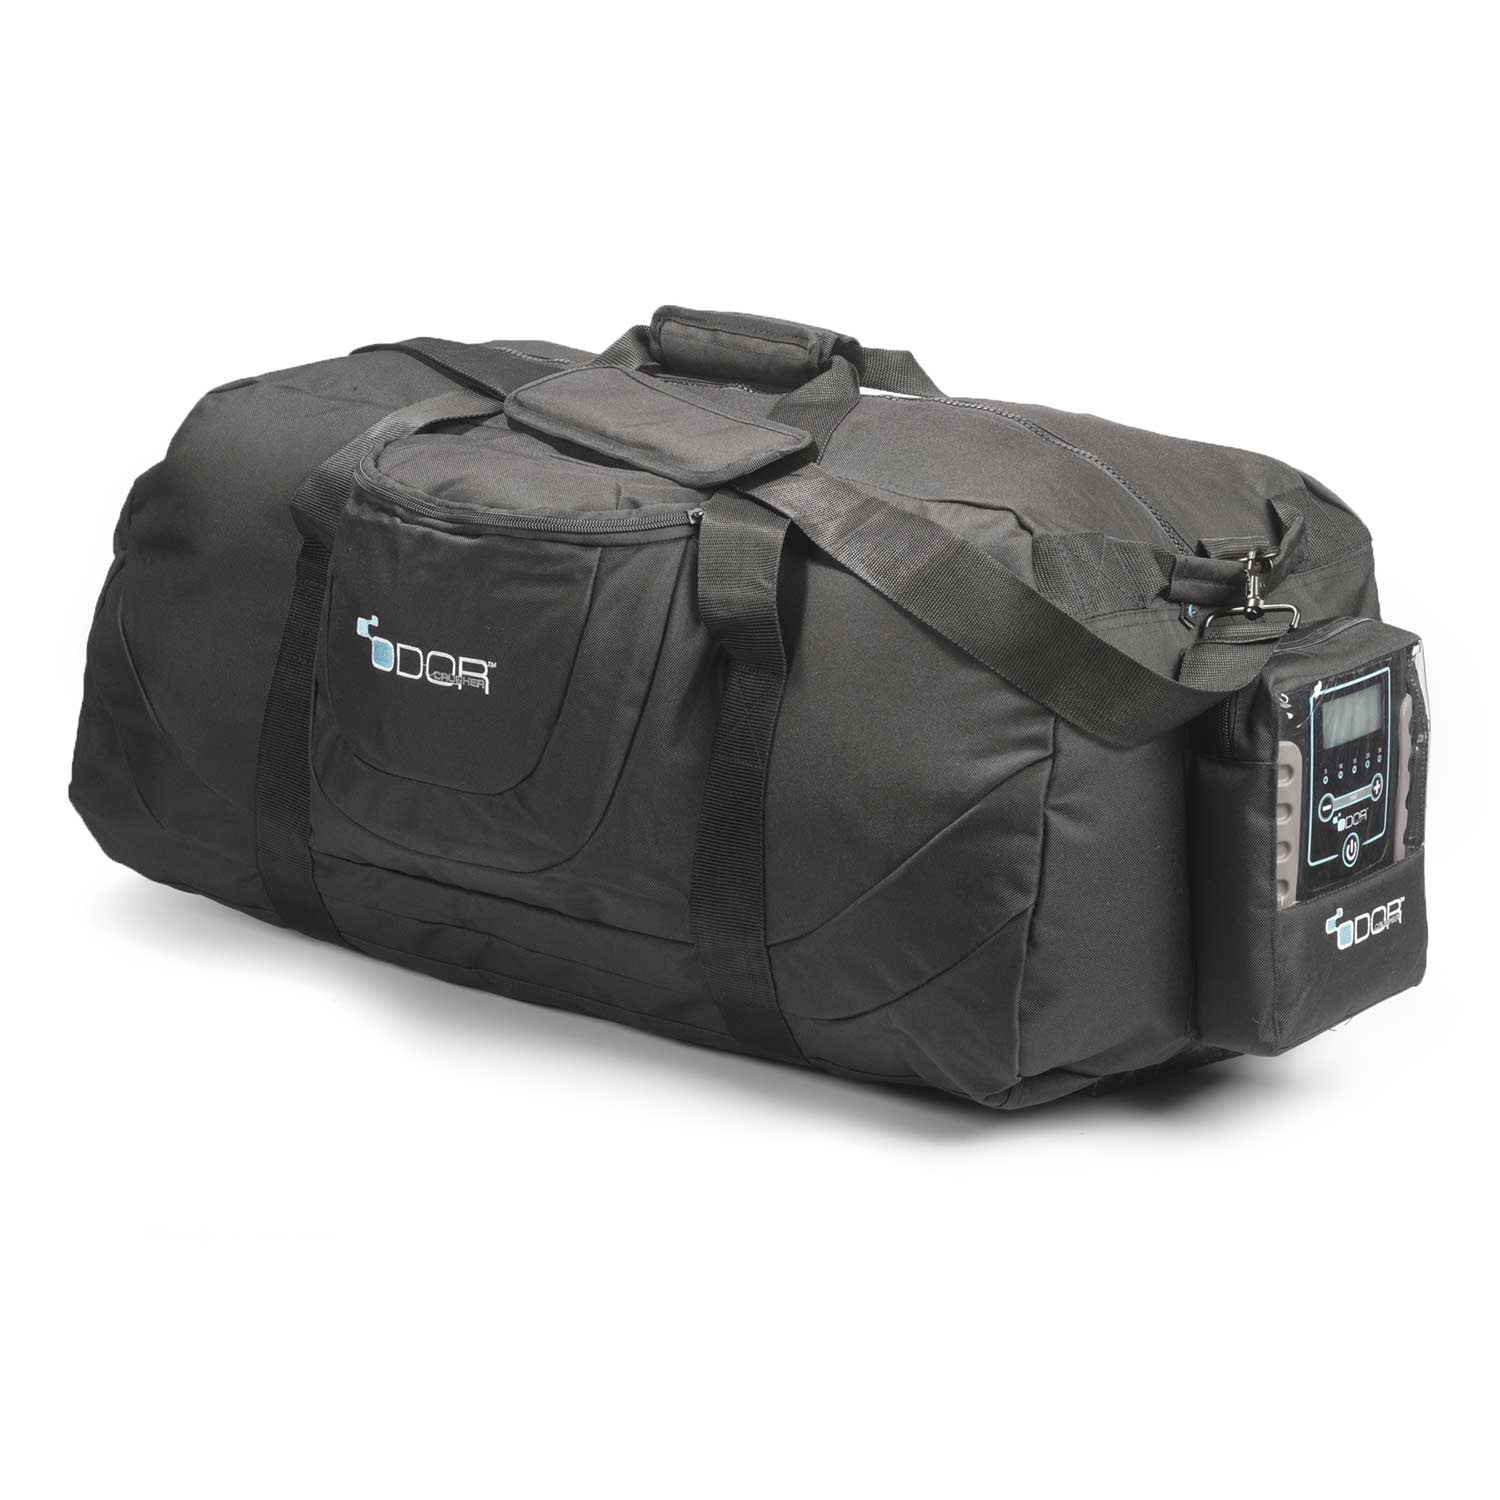 Odor Crusher Tactical Large Gear Bag